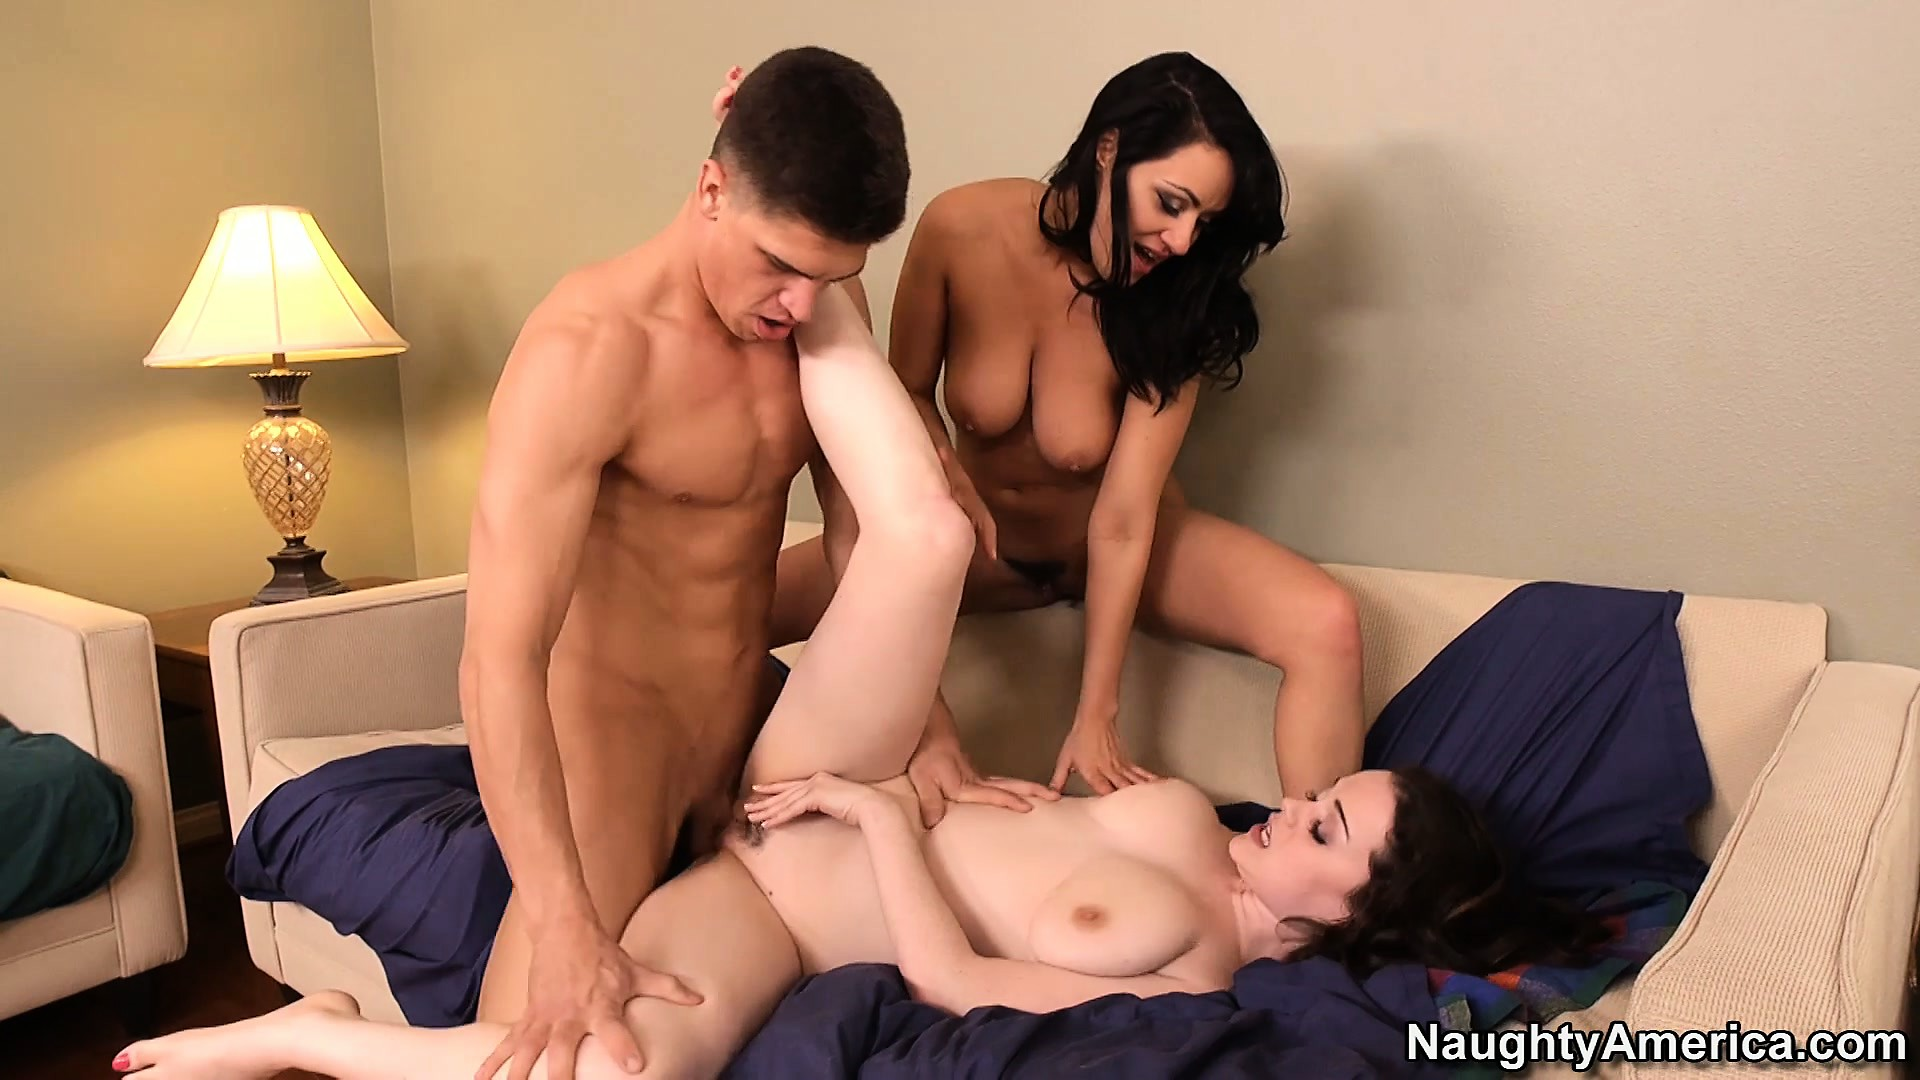 Sex Movie of Fanatical Ffm Threesome Fun With Slutty Charley Chase And Friends